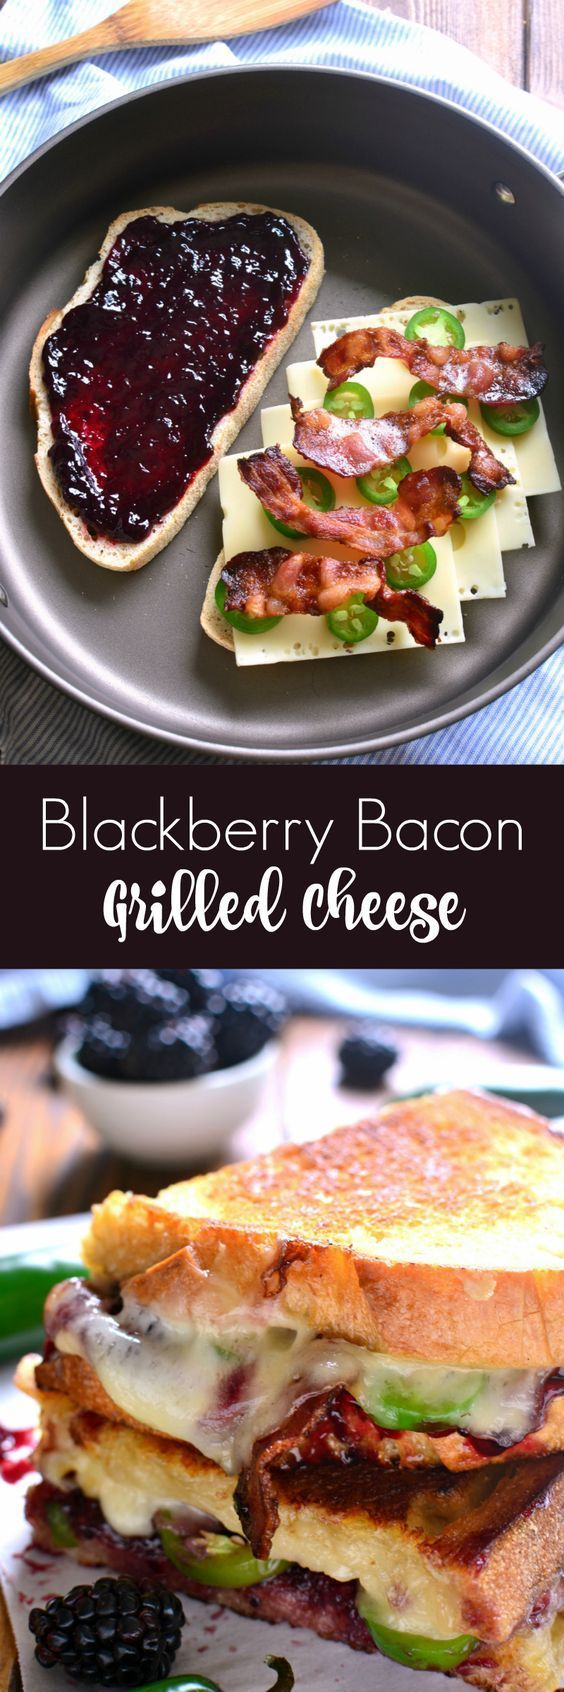 This Blackberry Bacon Grilled Cheese is the perfect combination of savory and sweet! Made with Swiss cheese, blackberry jam, fresh jalapeños, and crispy bacon, it's a must try for ALL sandwich lovers! (Sourdough Sandwich Recipes)